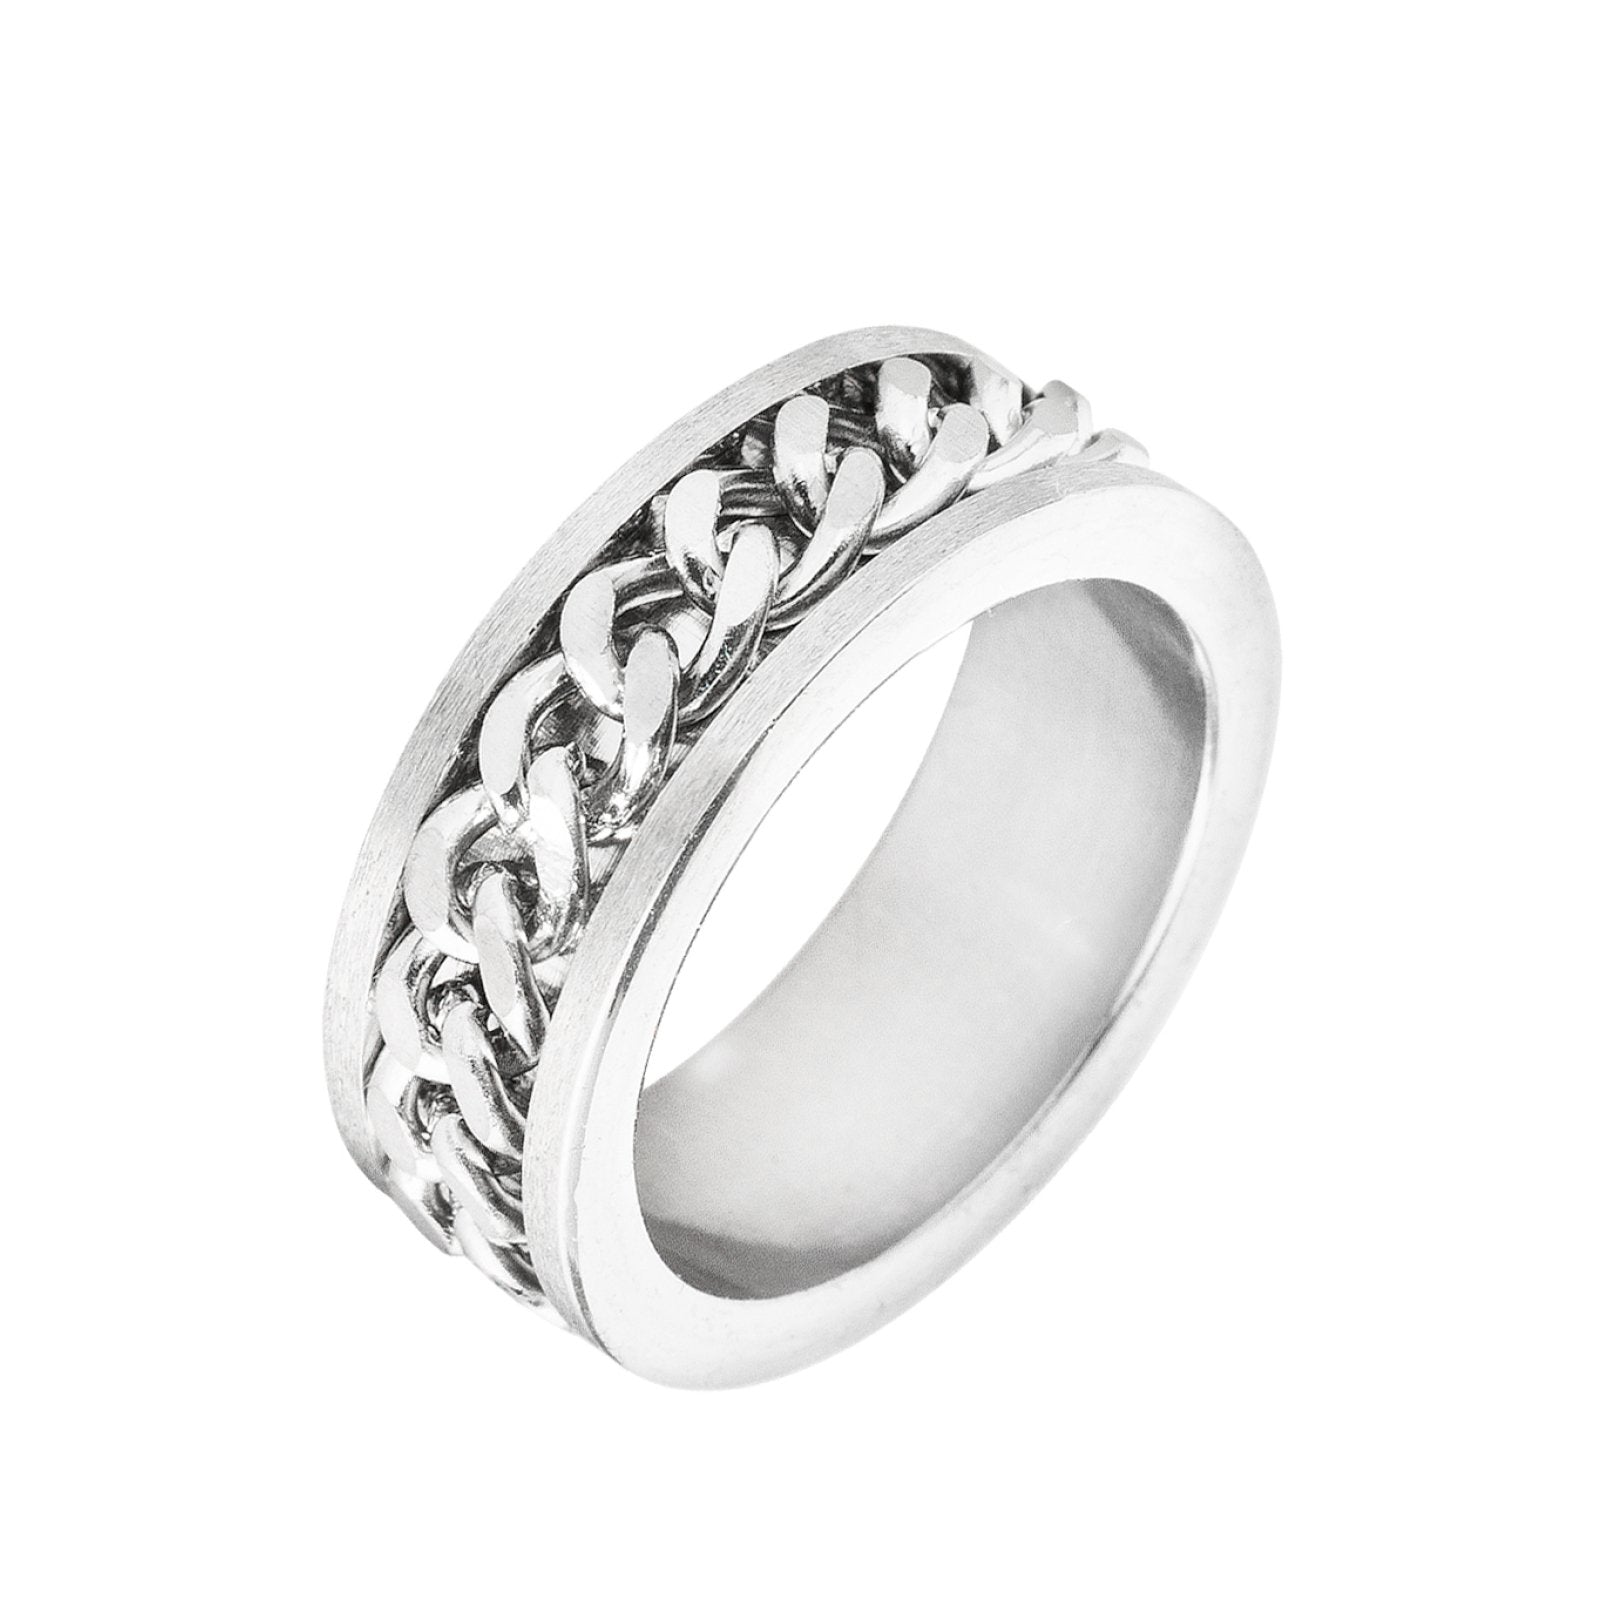 Silver Chainlink Ring